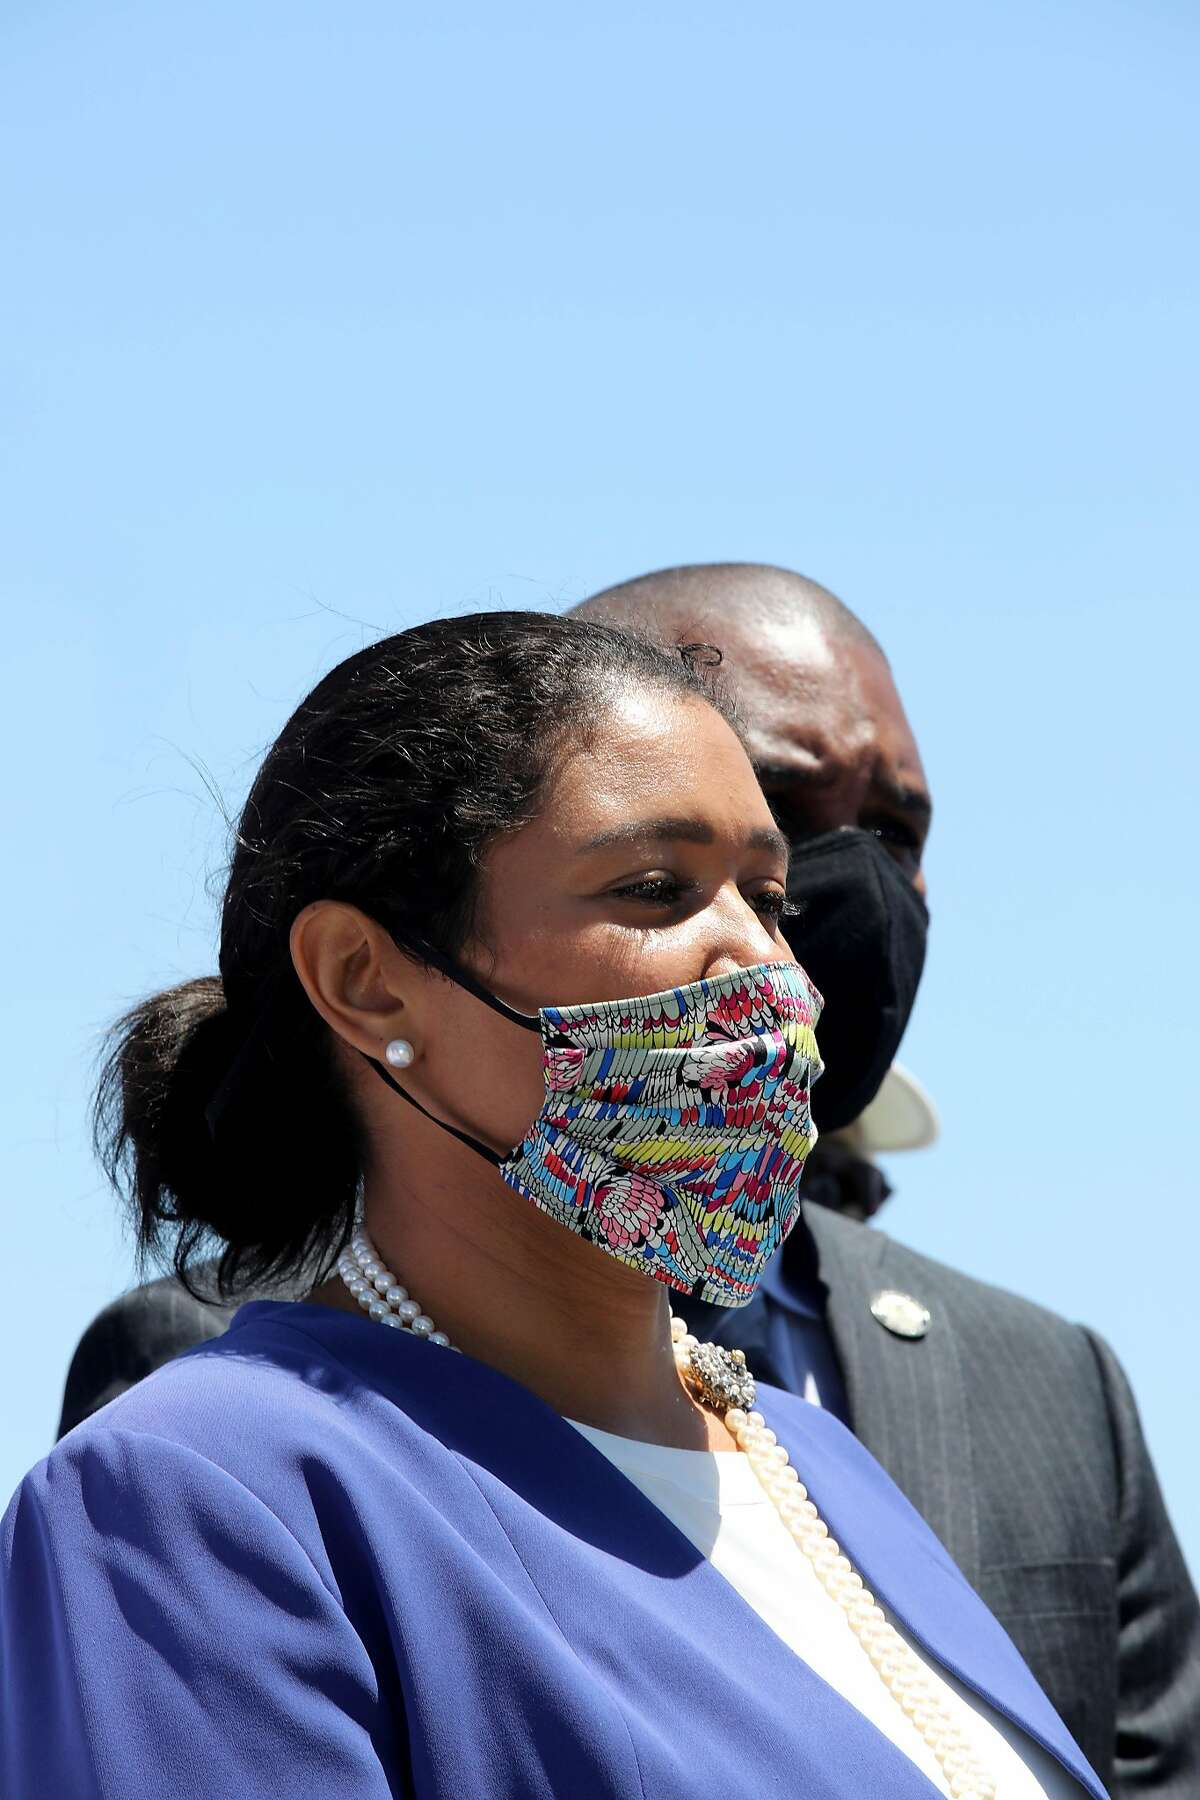 San Francisco Mayor London Breed attends a press conference at Agua Vista Park in San Francisco, Calif., on Tuesday, July 7, 2020.